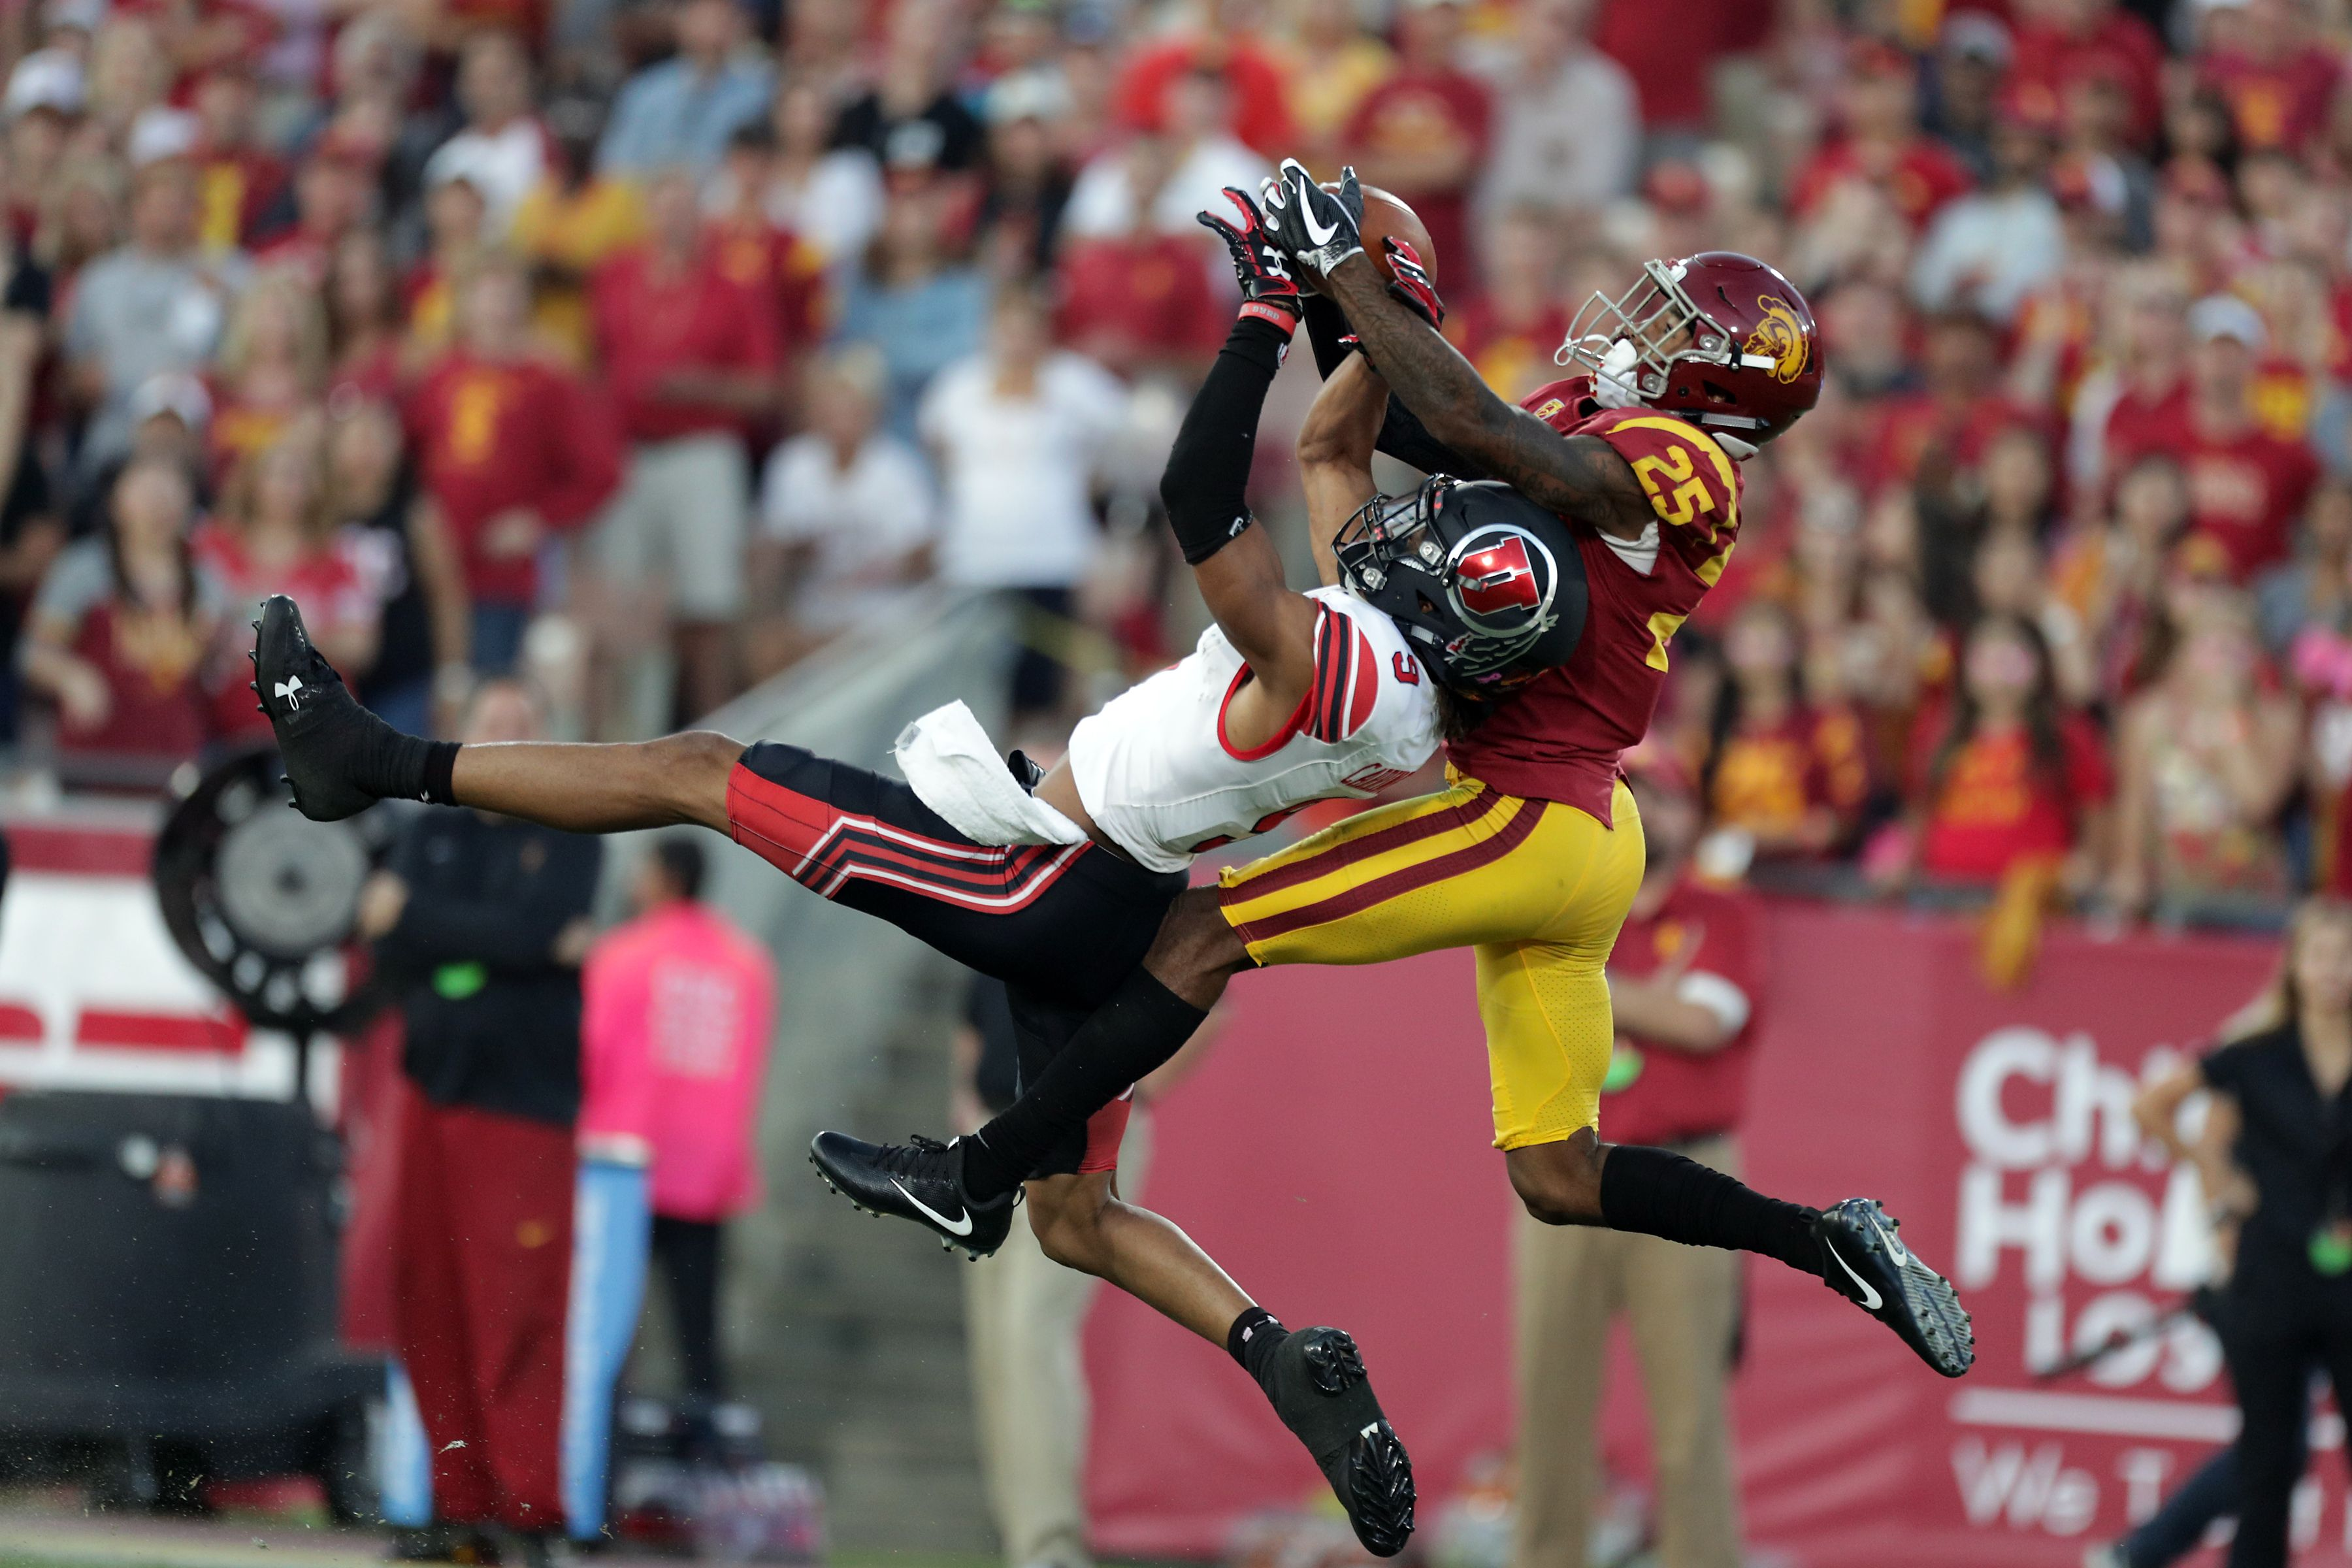 A Utah Football Safety breaks up a pass against USC